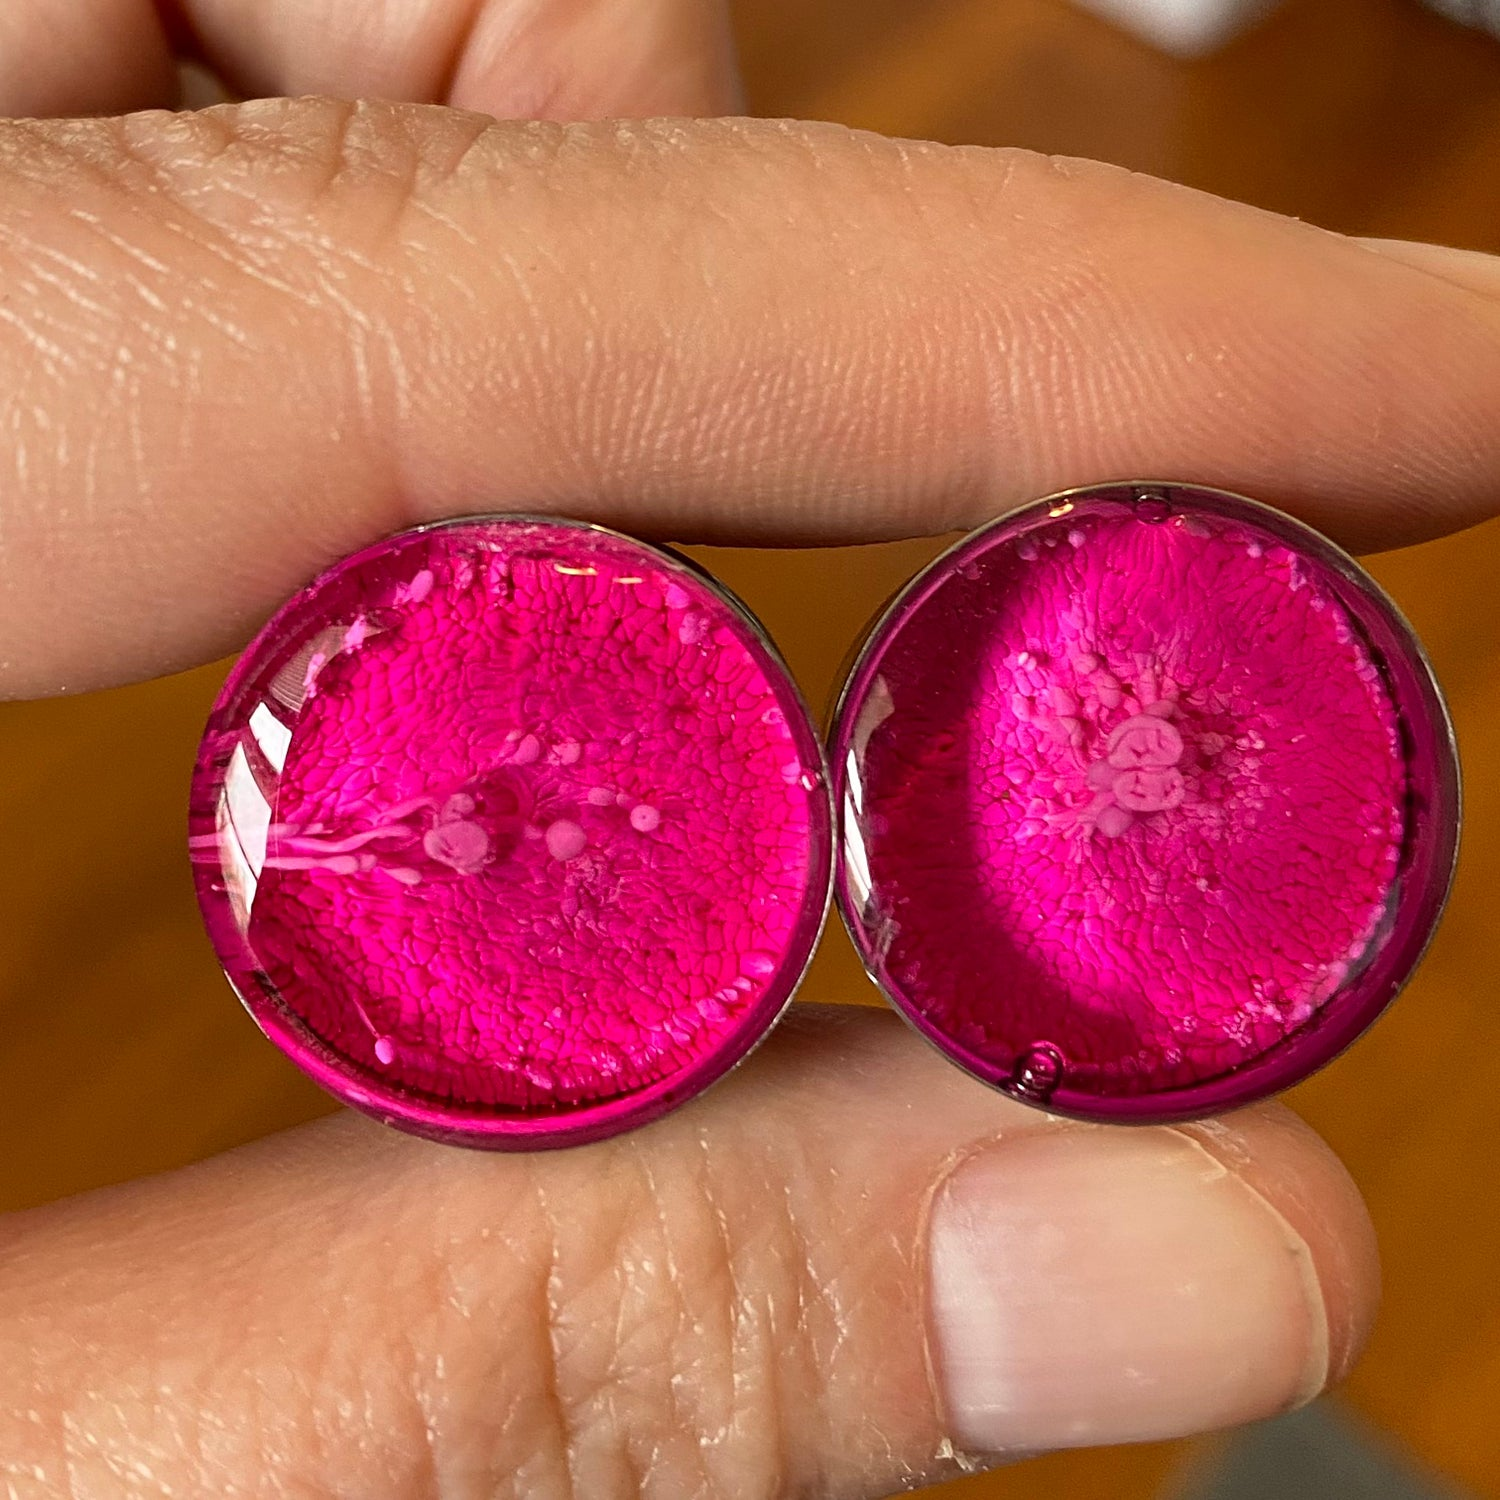 Image of 3/4 Hot Pinky Inky Plugs